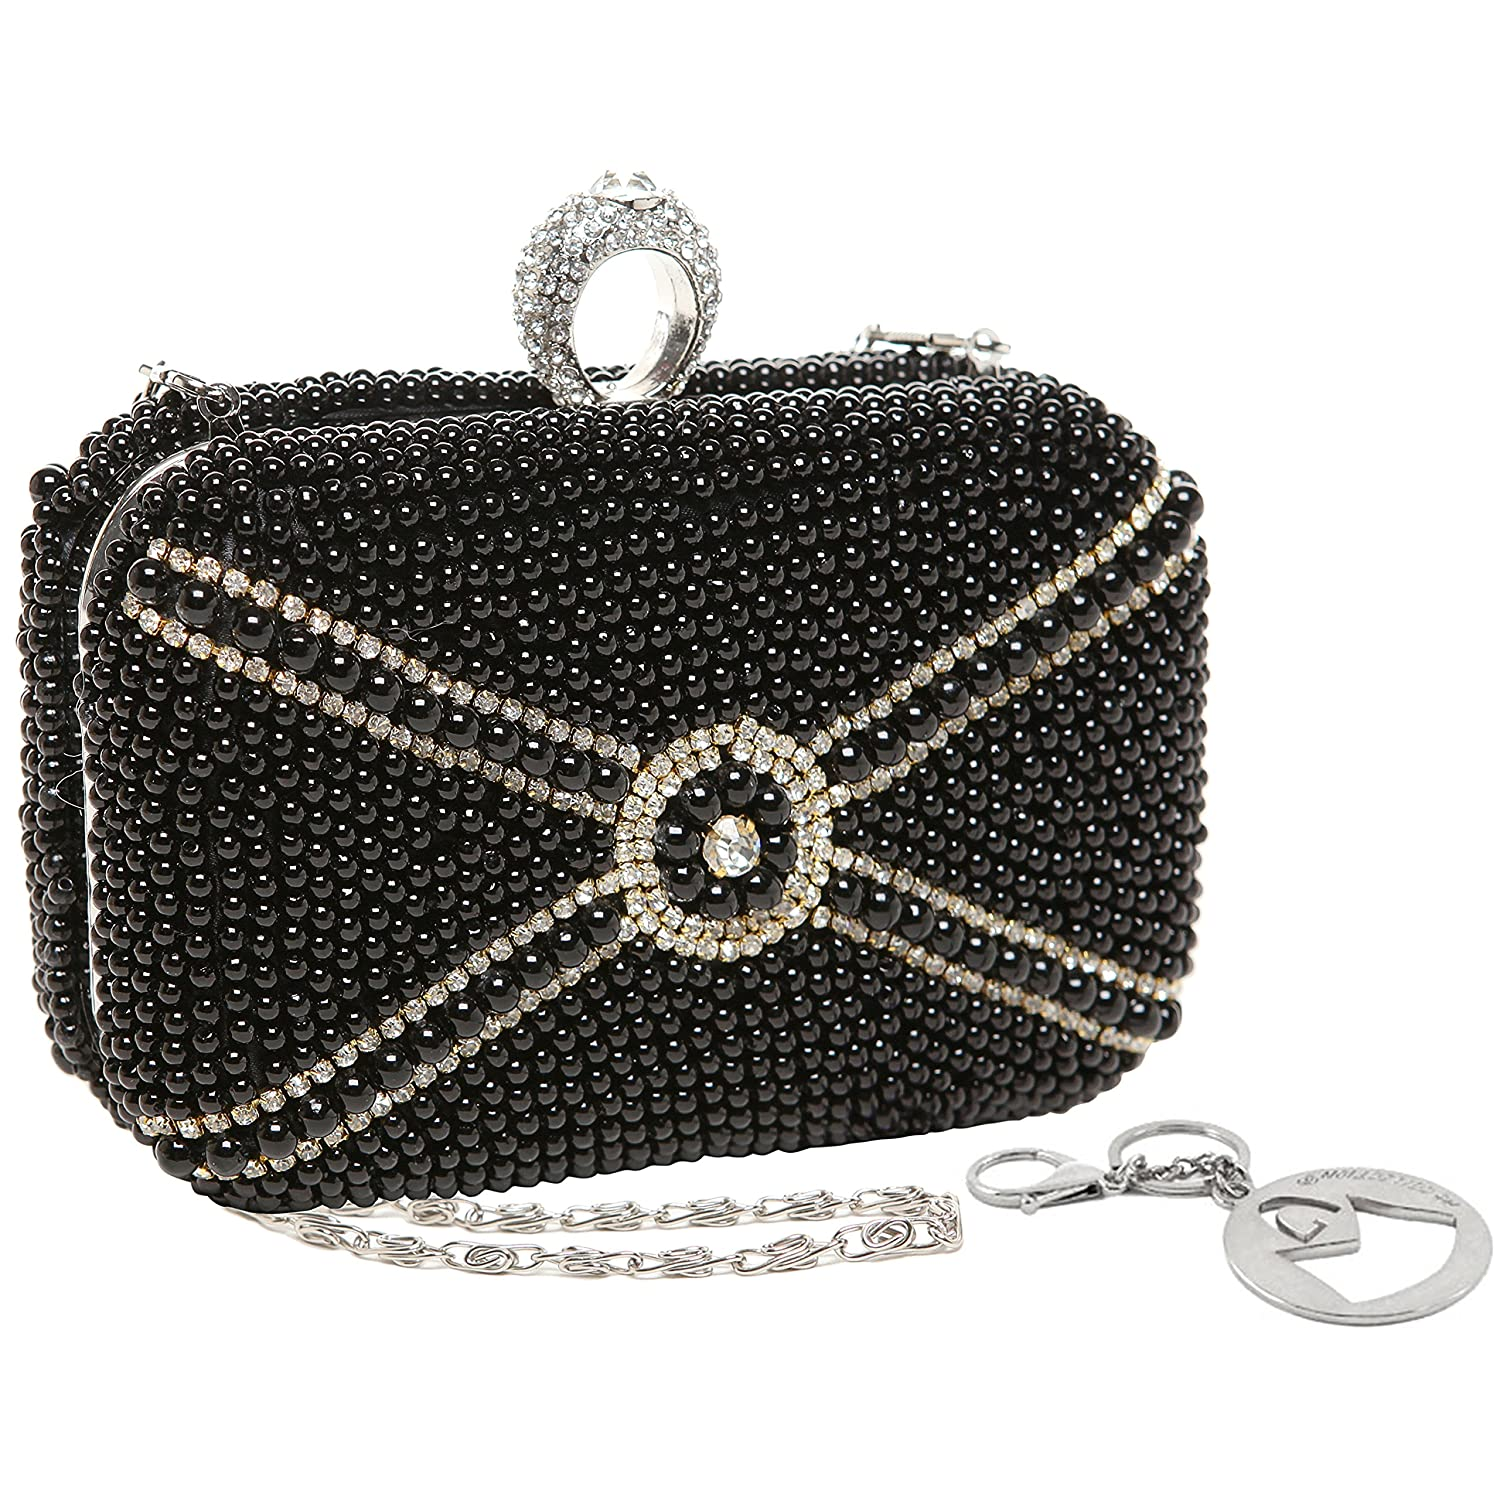 MG Collection Hand Beaded Pearls with Rhinestones Hard Case Box / Clutch Purse